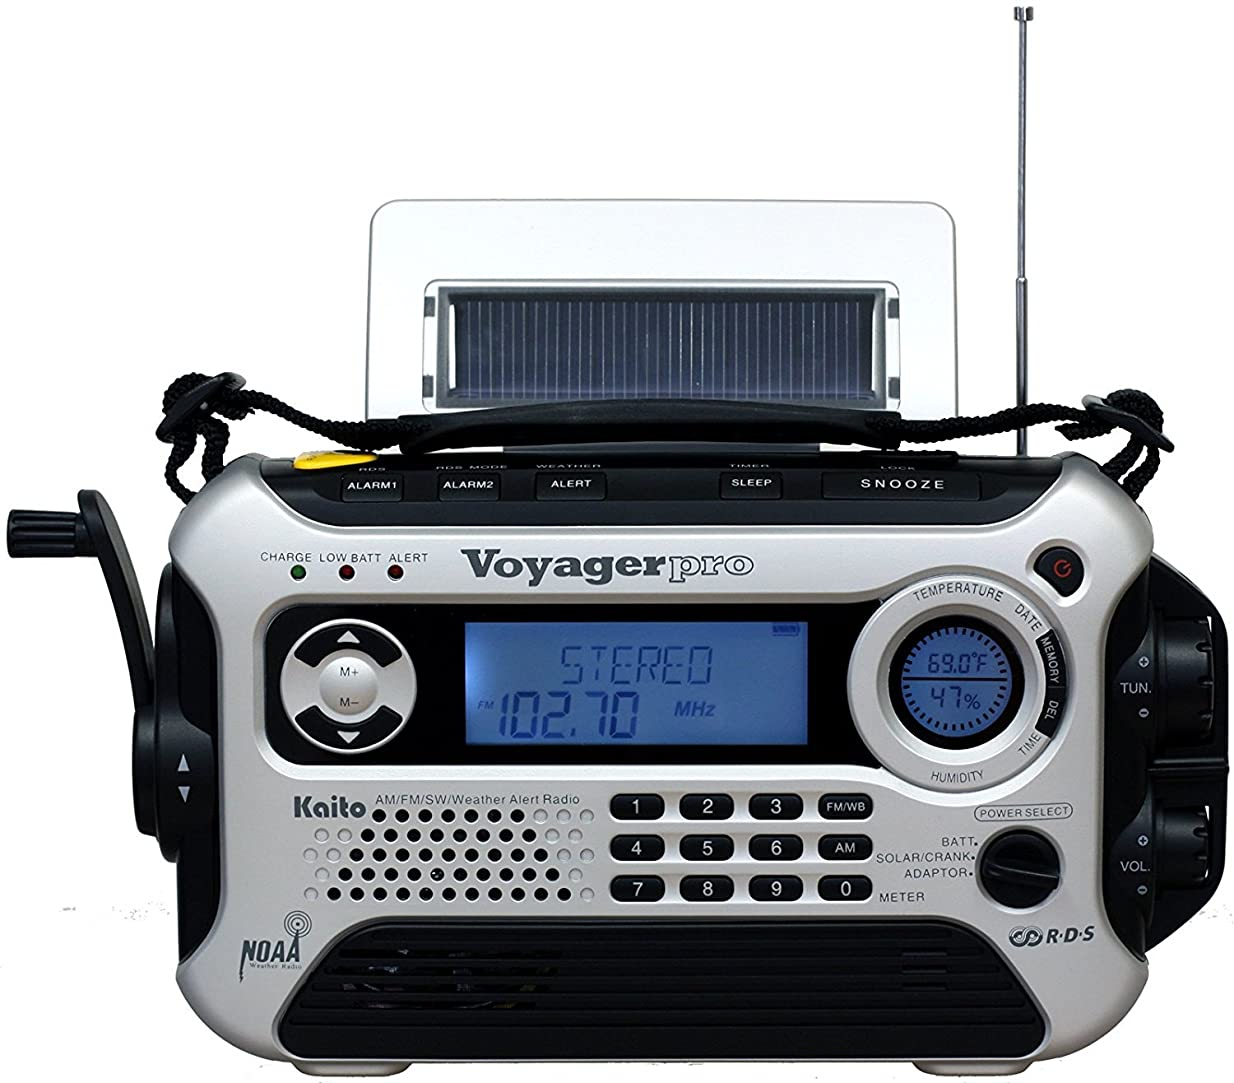 あからさまパラナ川Kaito Voyager Pro KA600 Digital Solar/Dynamo AM/FM/LW/SW & NOAA Weather Emergency Radio with Alert & RDS, Silver by Kaito